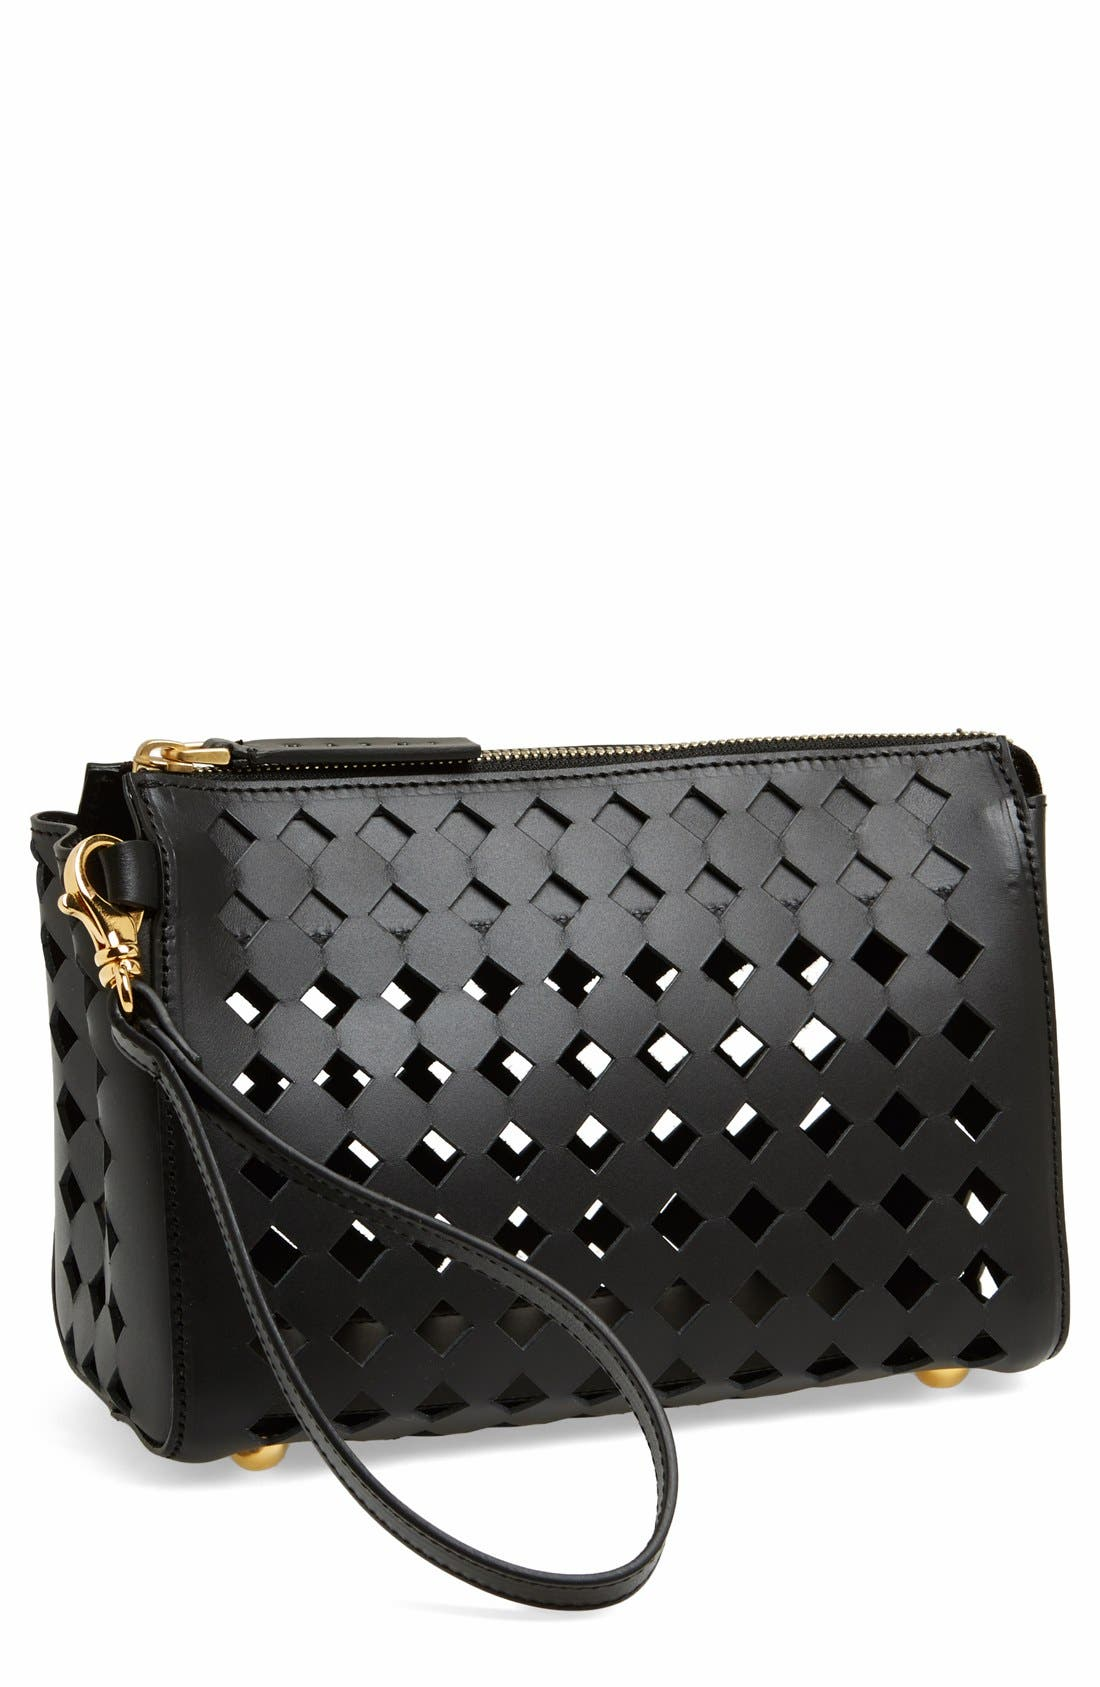 Alternate Image 1 Selected - Marni Cutout Leather Clutch